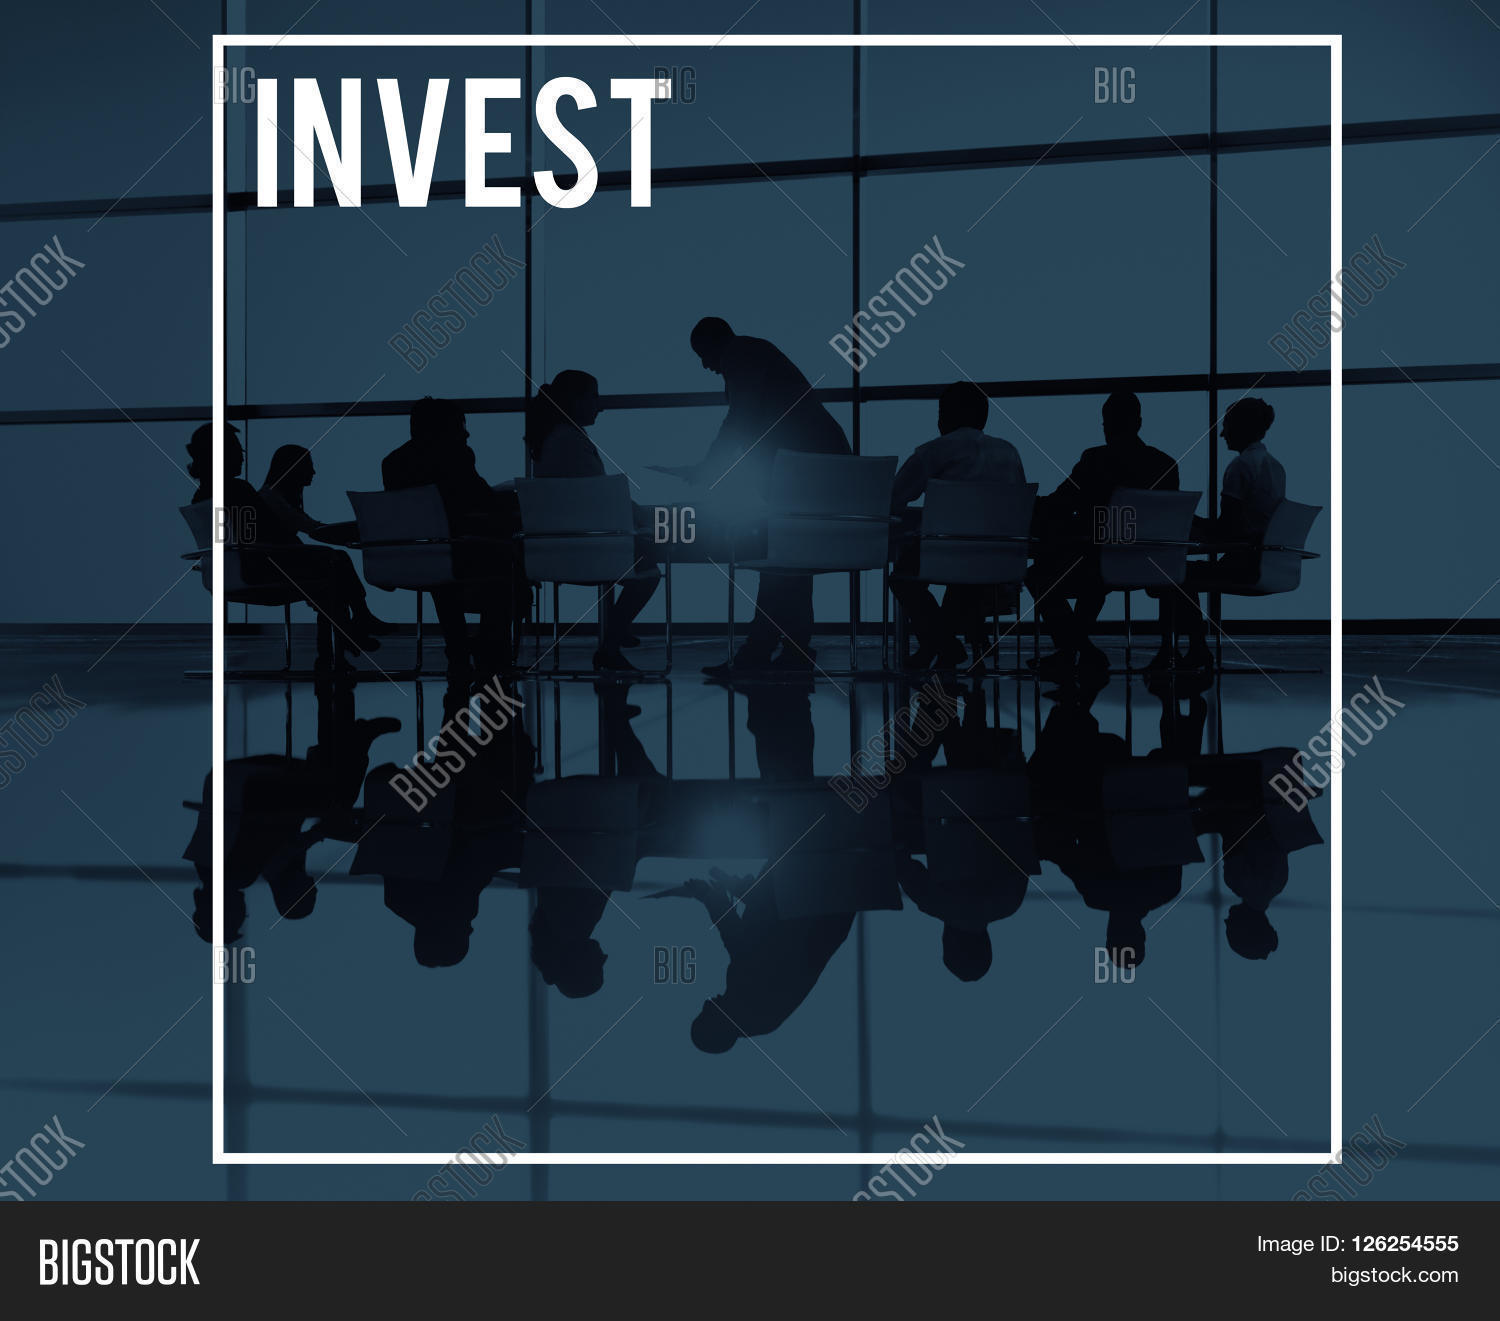 Invest Investment Investing Finance Money Concept